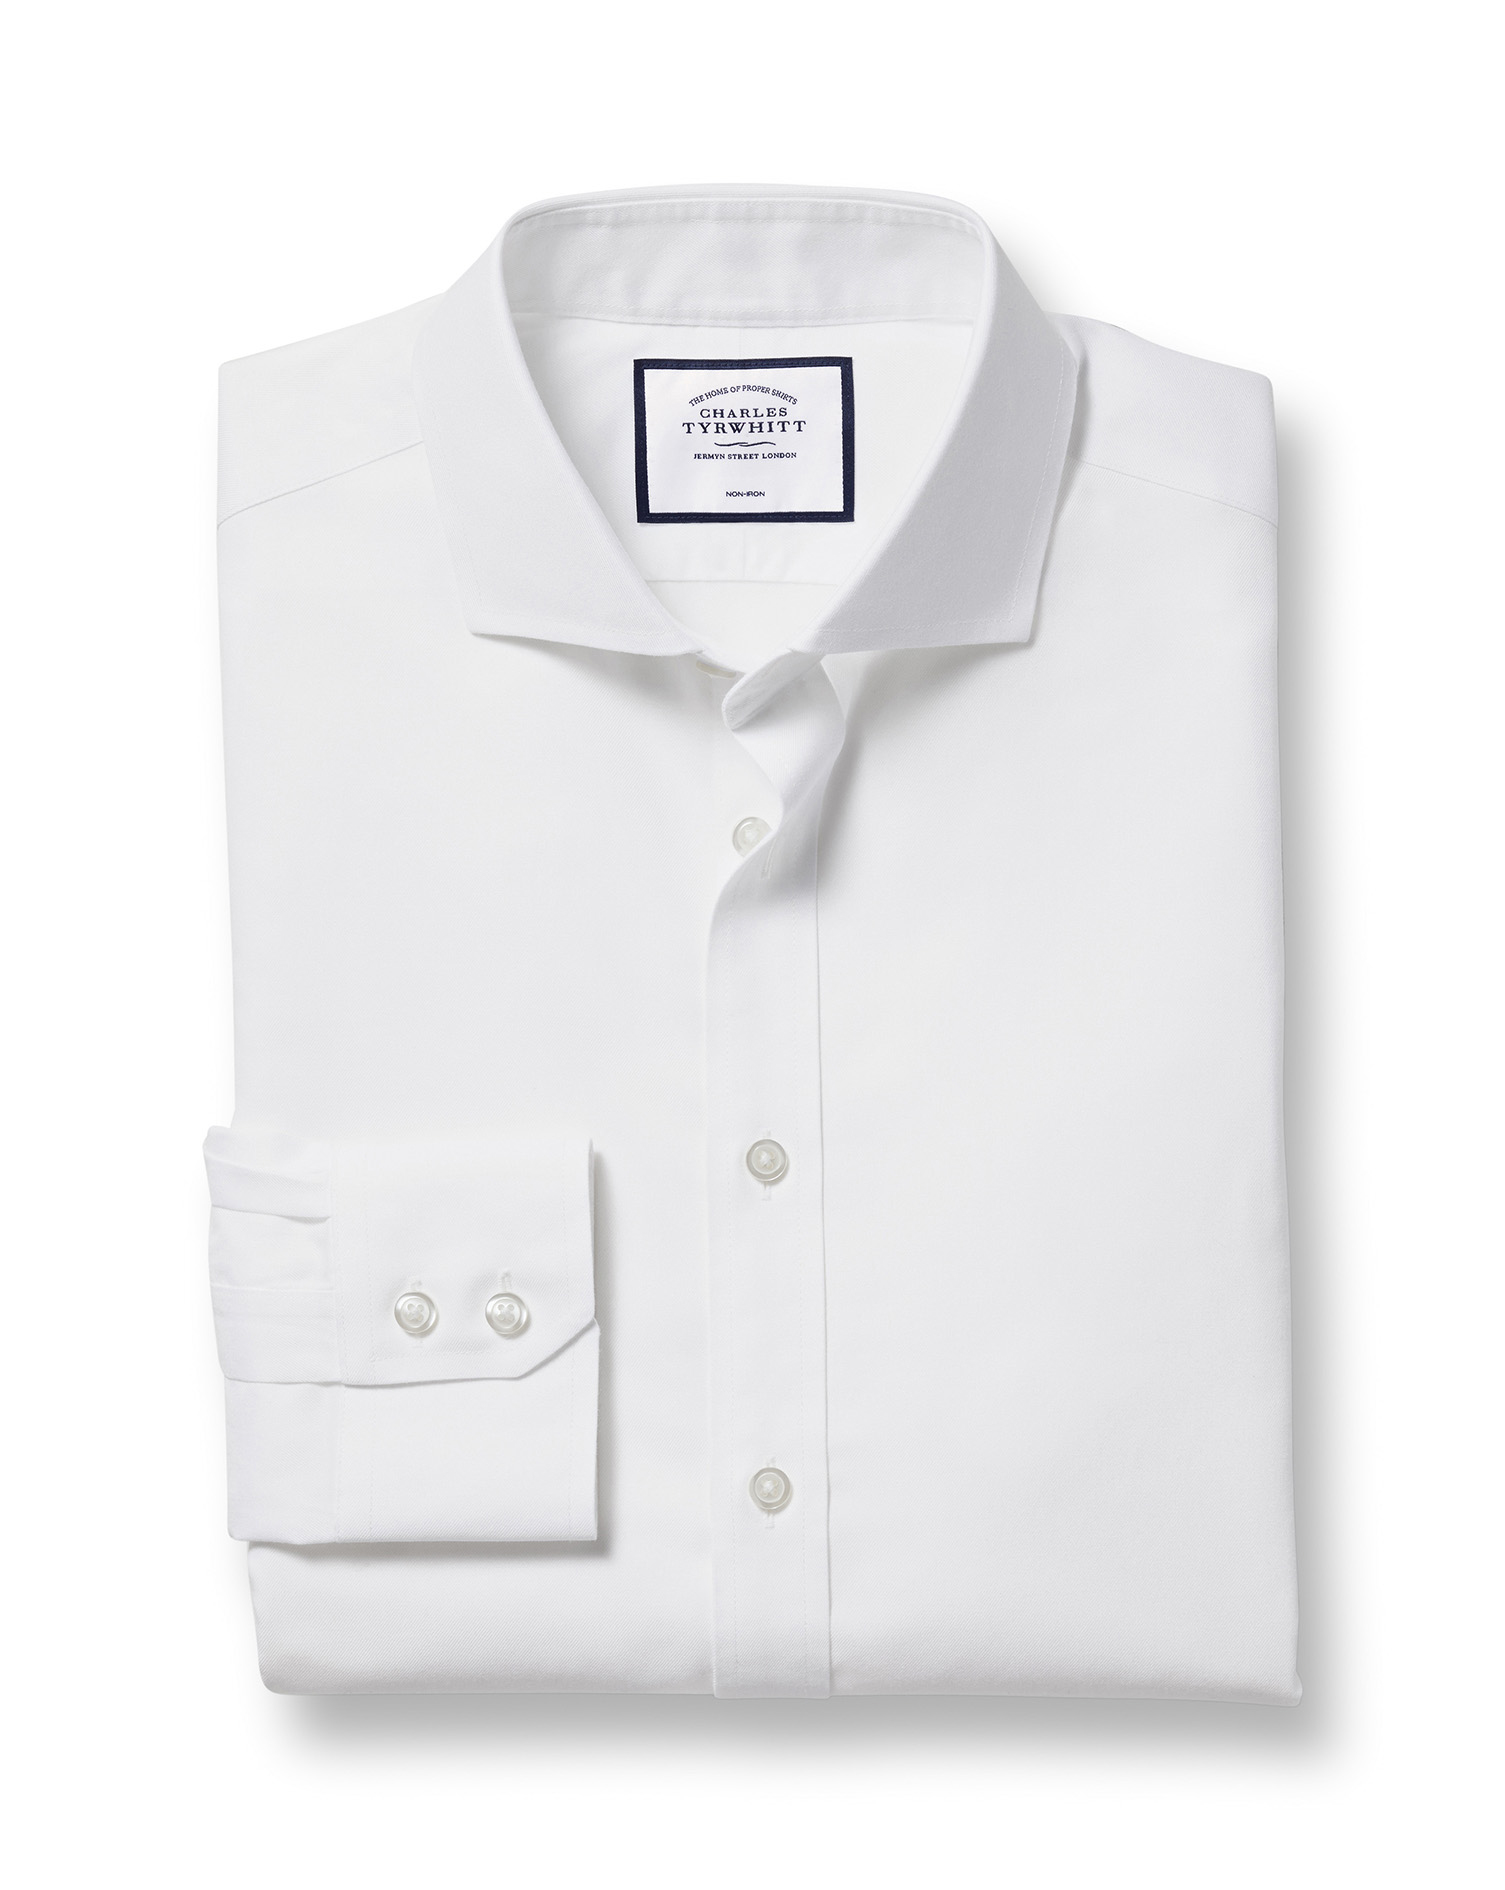 Extra Slim Fit Extreme Cutaway Non-Iron Twill White Cotton Formal Shirt Single Cuff Size 16.5/34 by